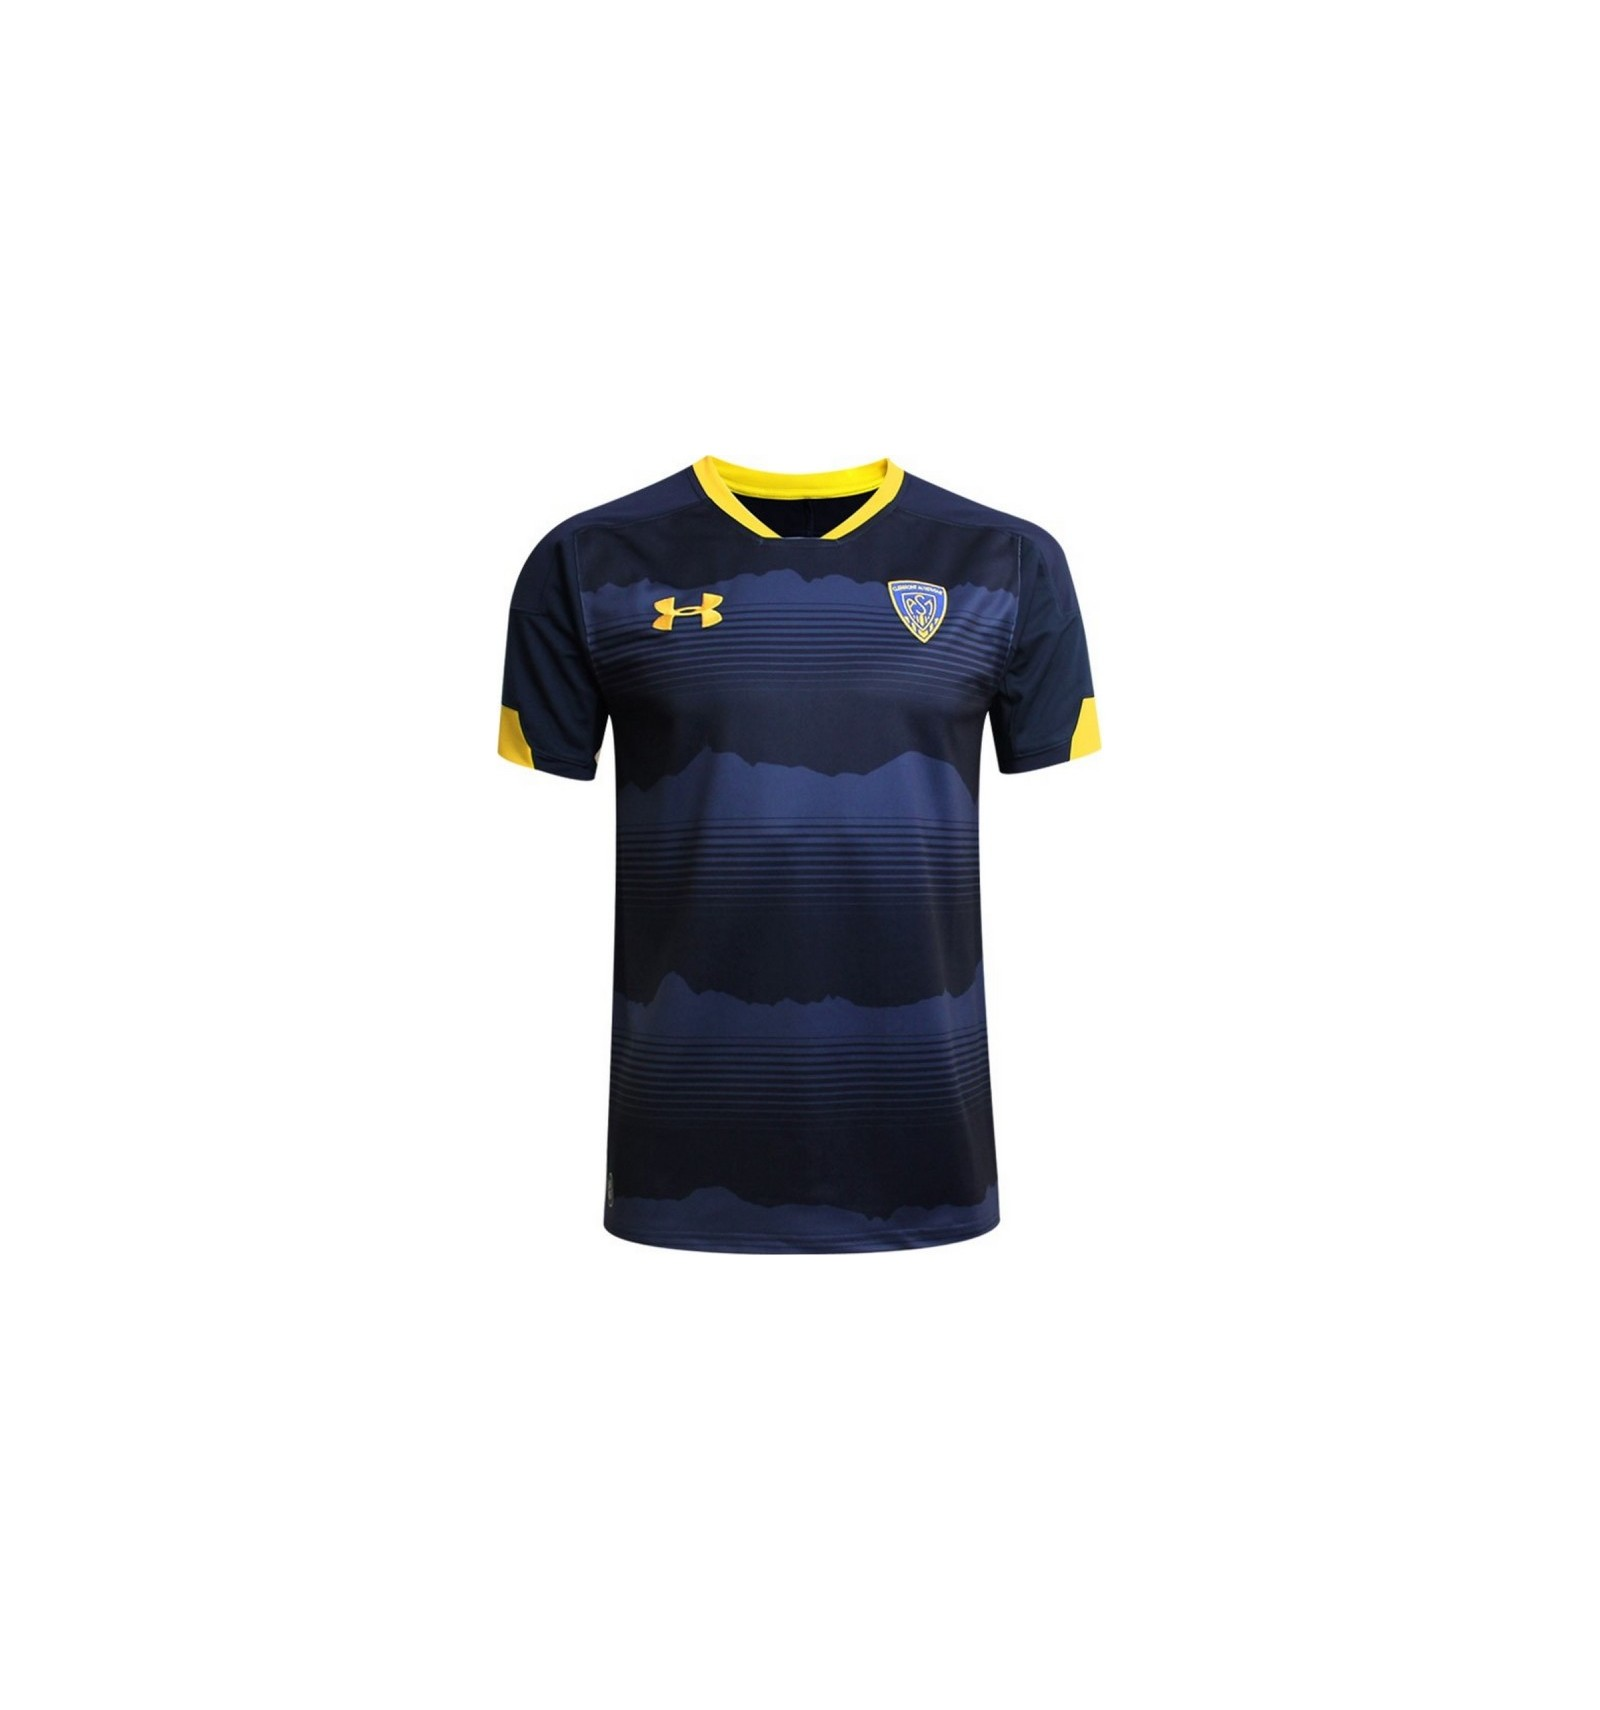 on sale 647a7 189fd Maillot Supporter ASM Clermont 2018-19 Under Armour marine